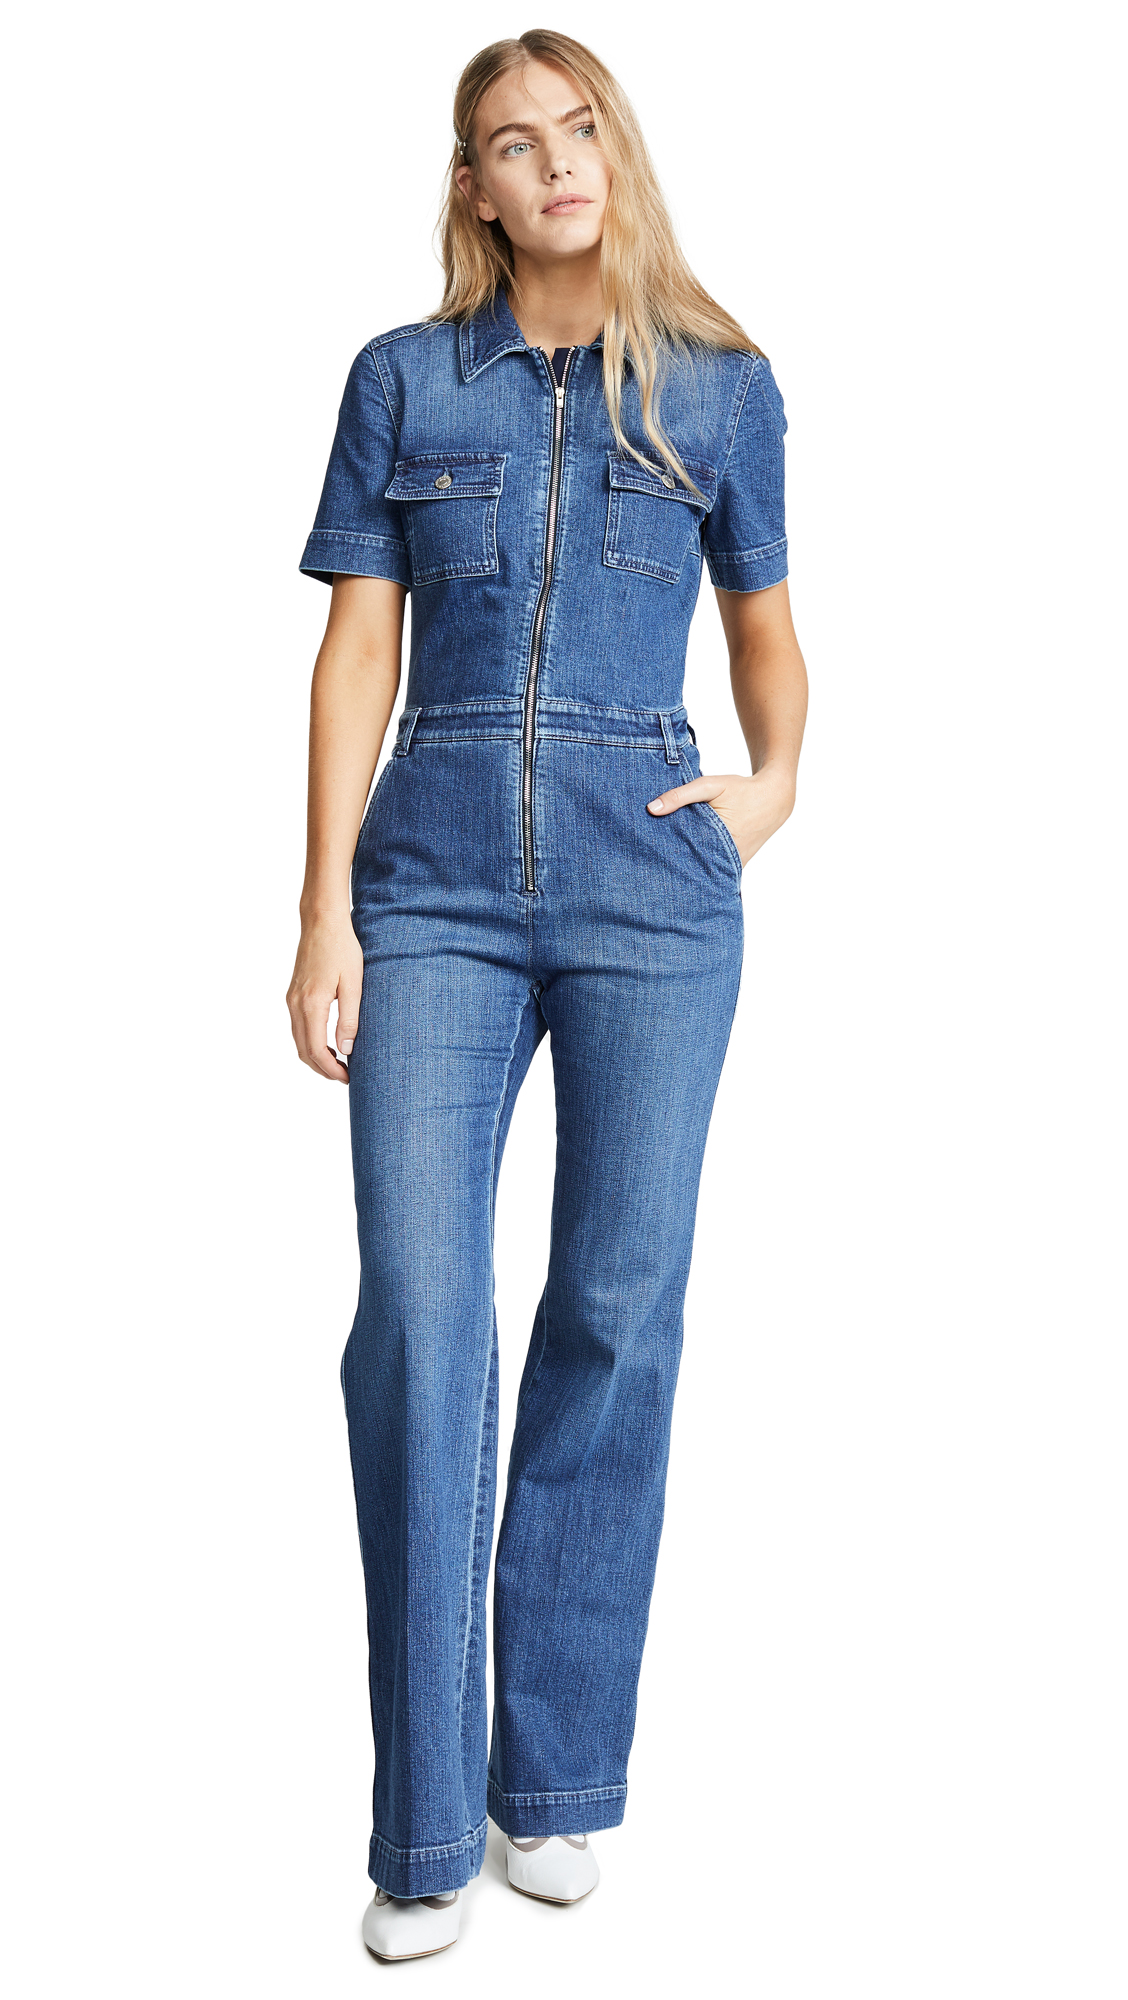 8ed8401170141 DESIGNER JUMPSUITS and ROMPERS - Designer Jumpsuit Shop.com